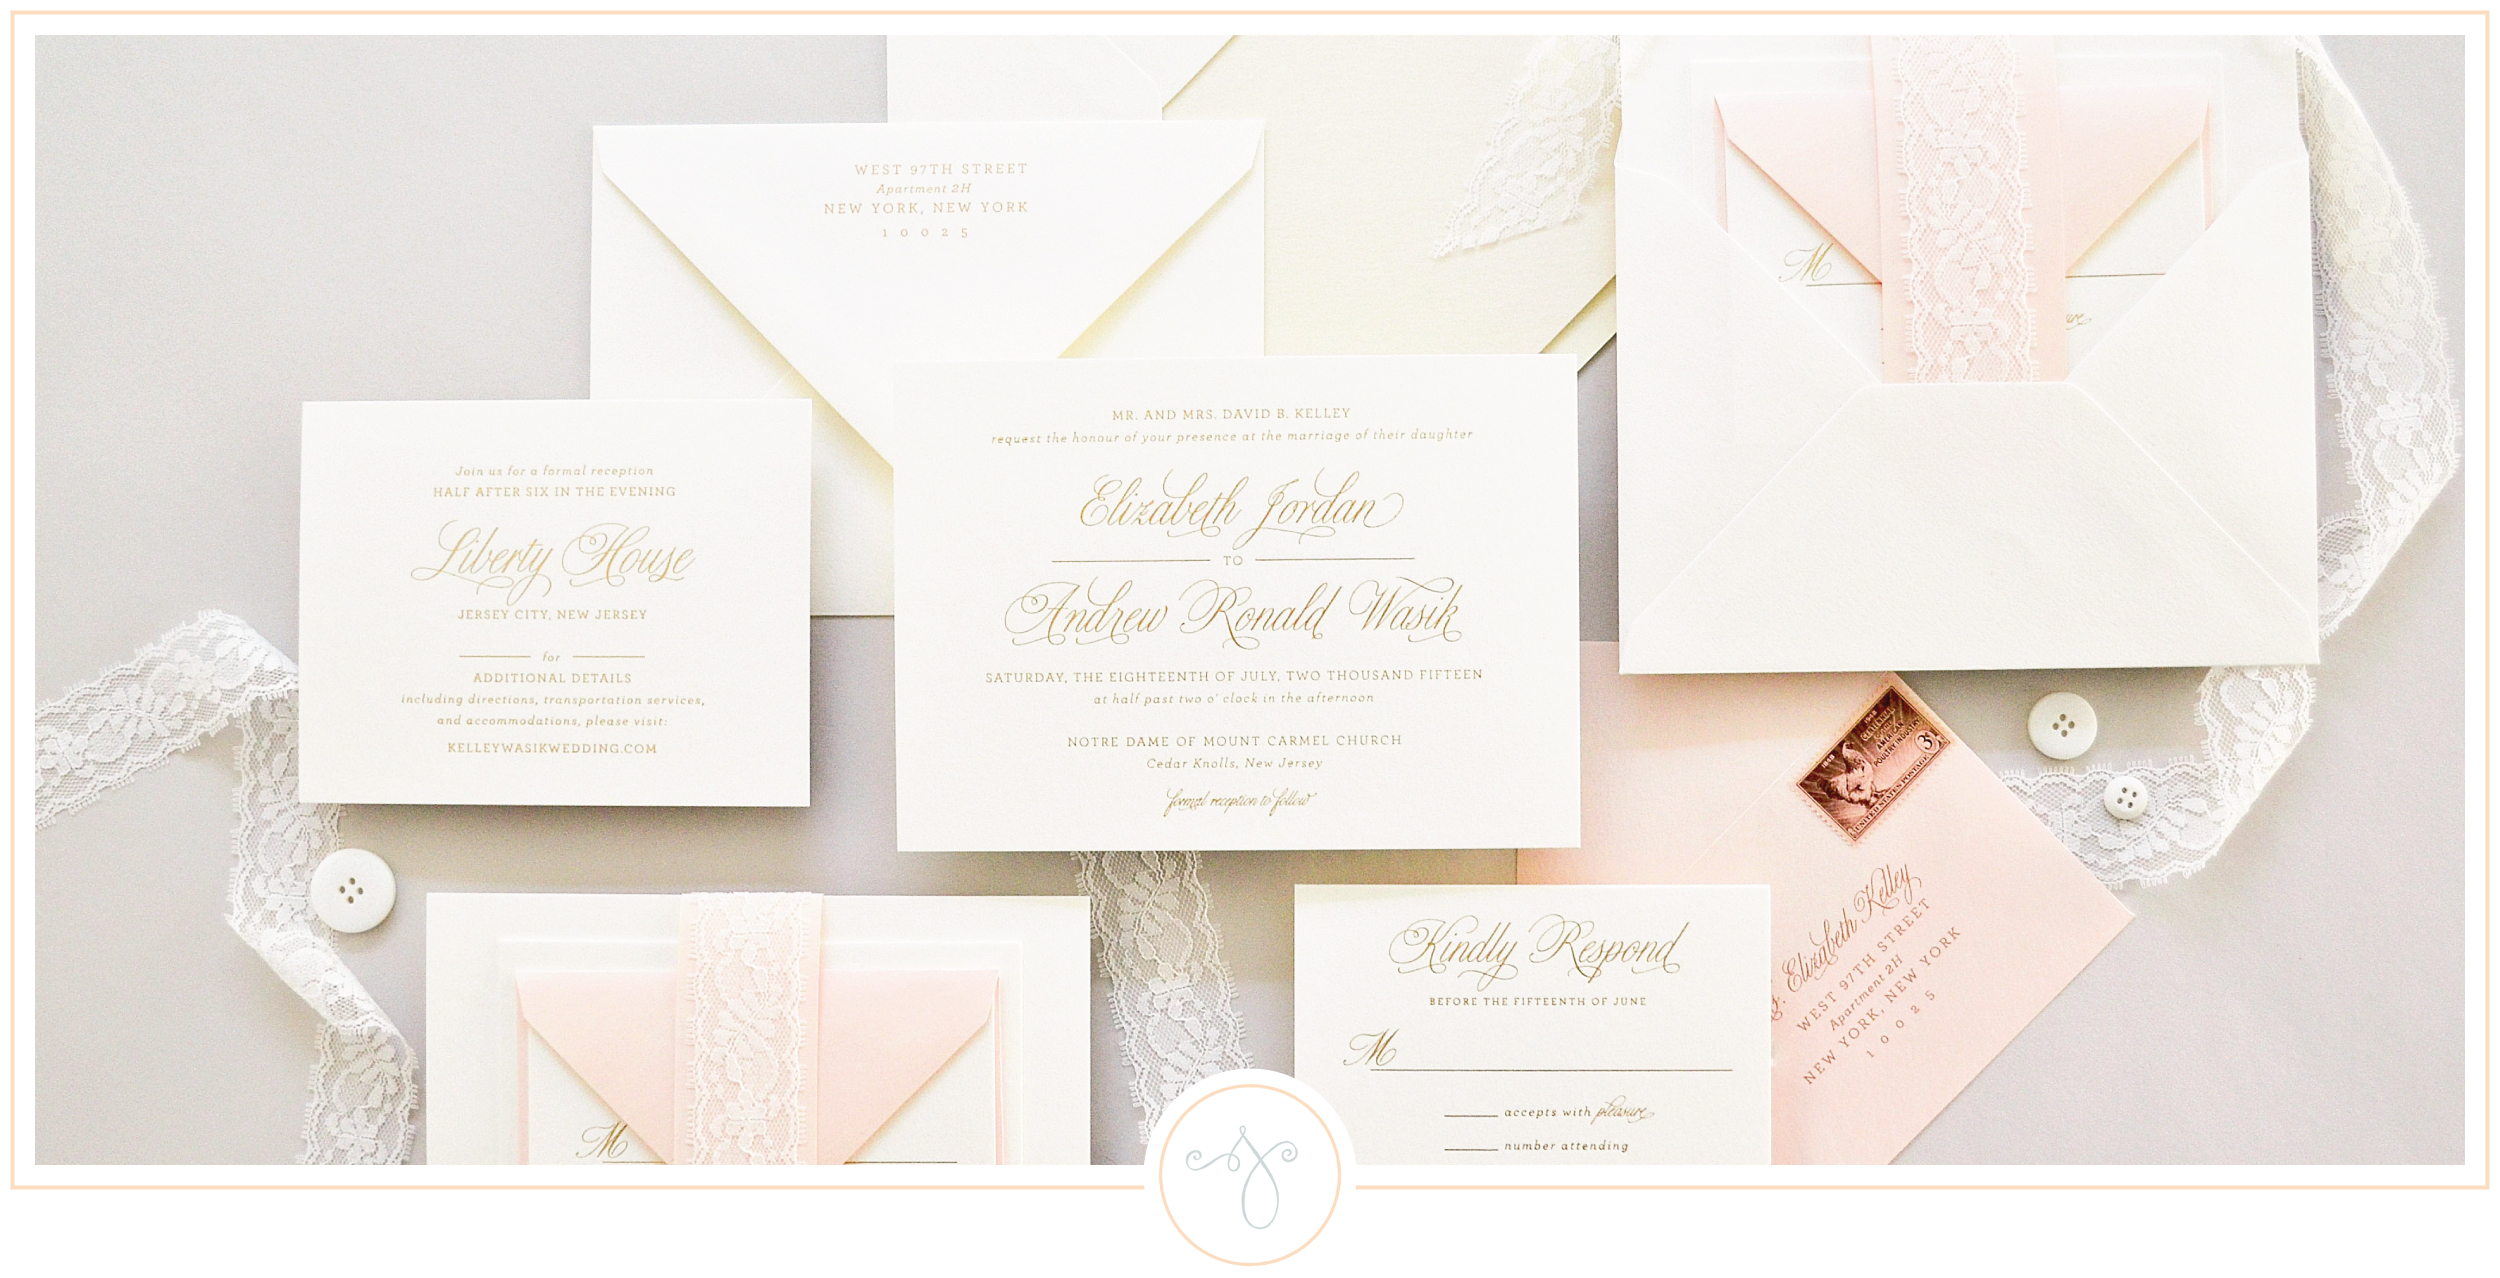 Sincerely-Jackie-Long-Island-Custom-Wedding-Invitations-5.jpg